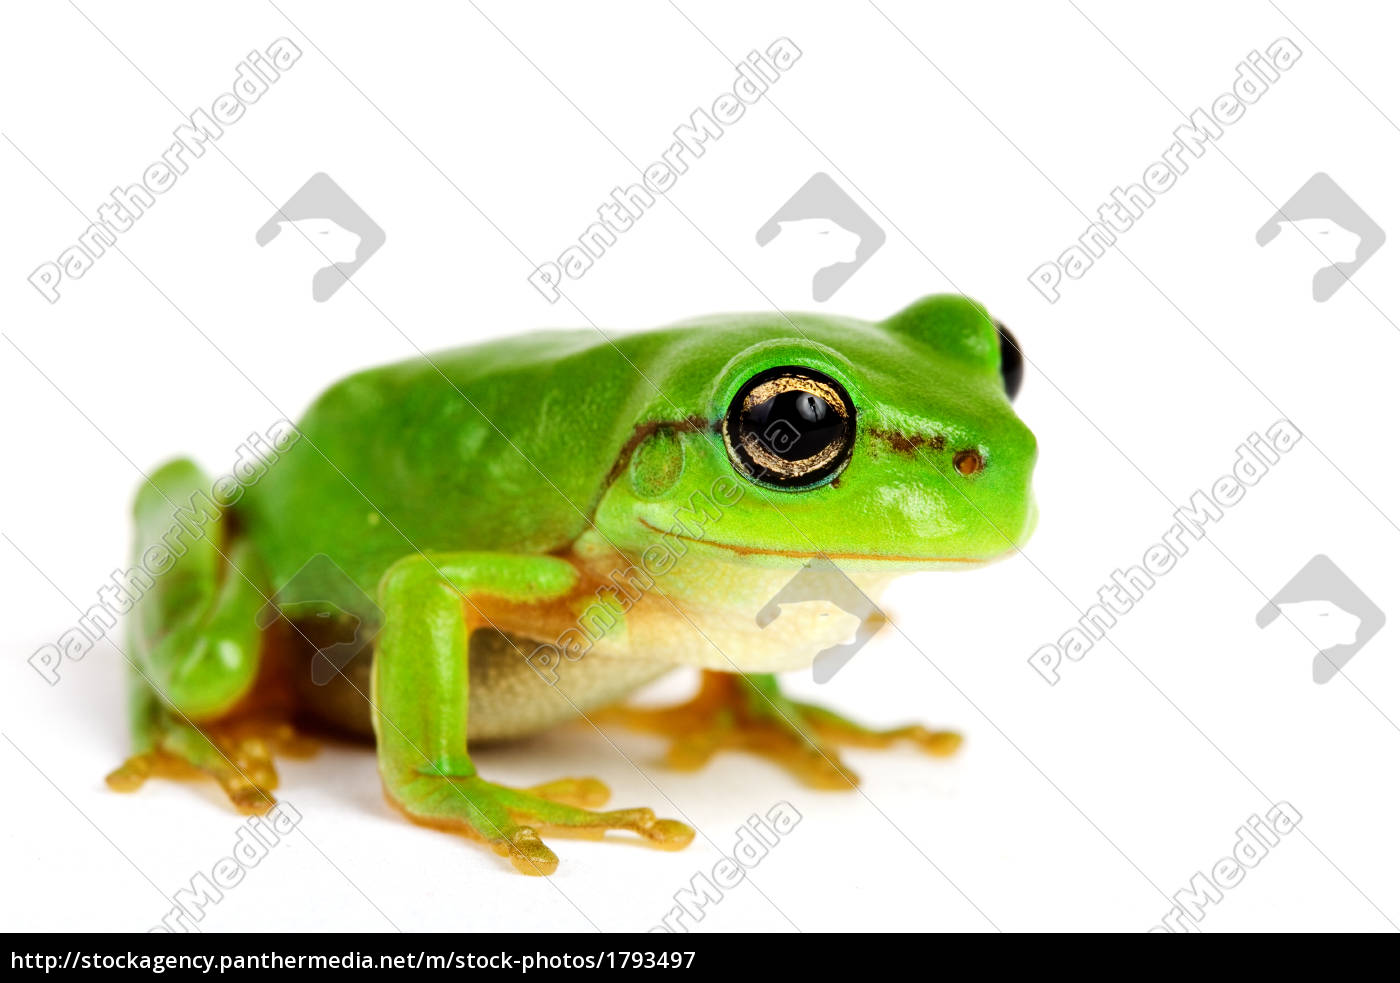 little, tree-frog, on, white, background - 1793497